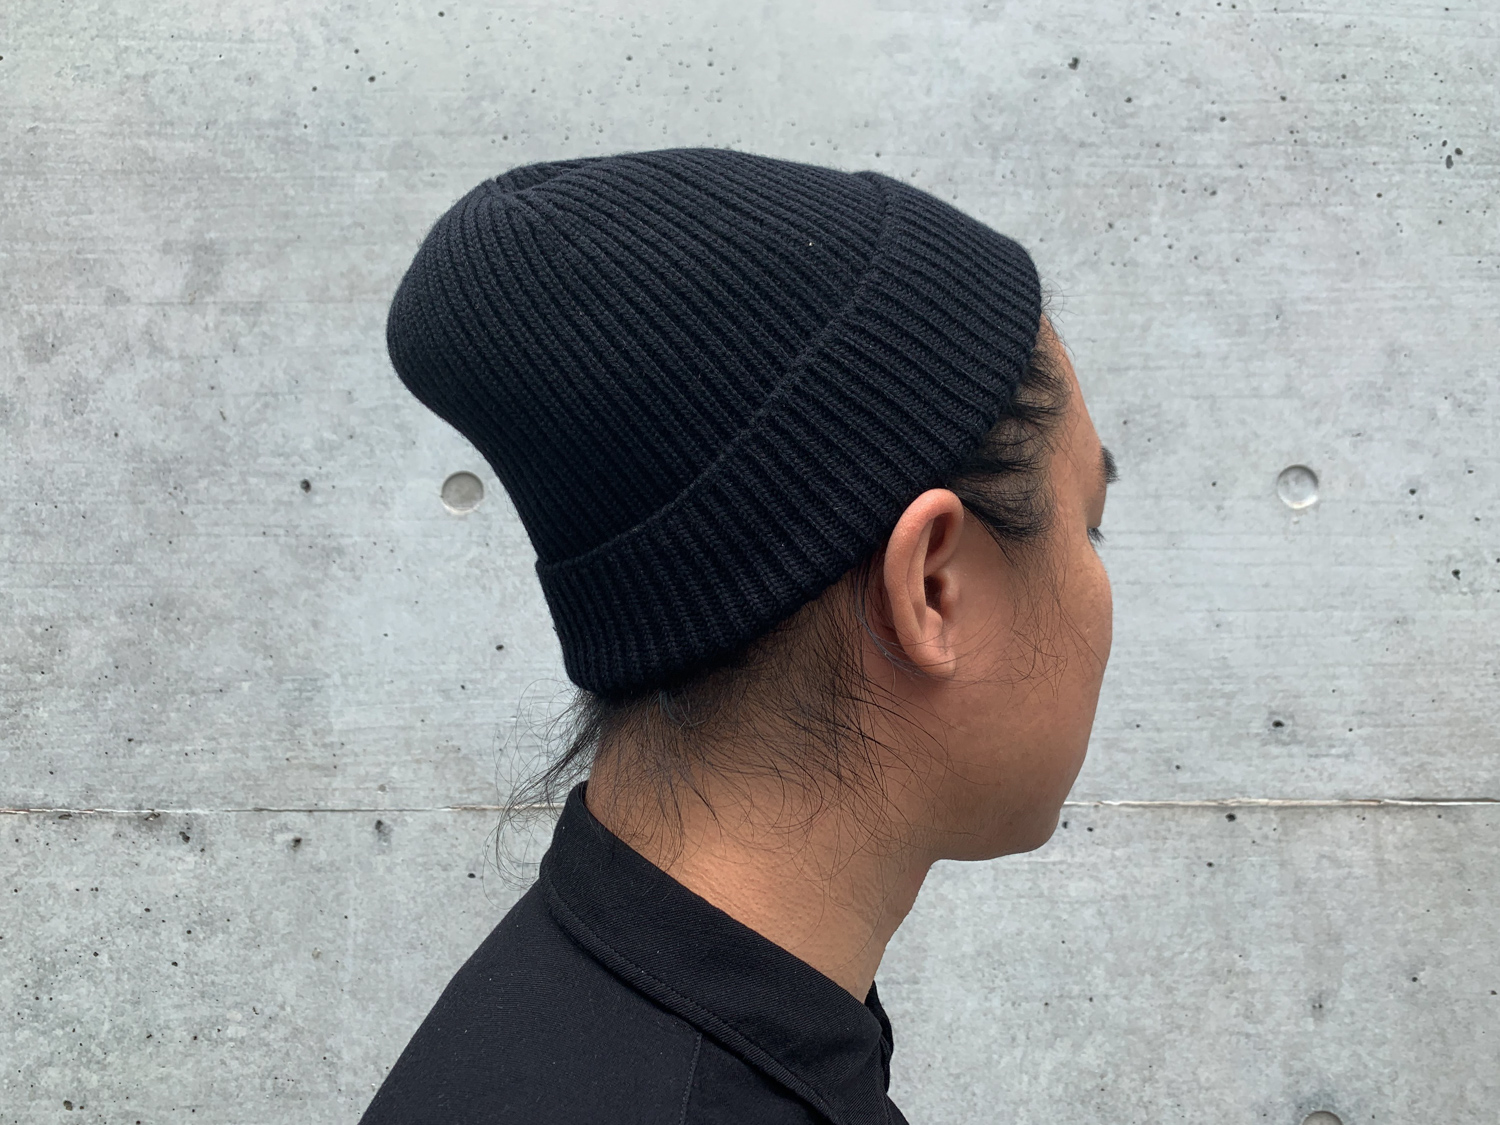 A wool watch cap that is sized enough fits your head, but not too loose that it comes out easily.